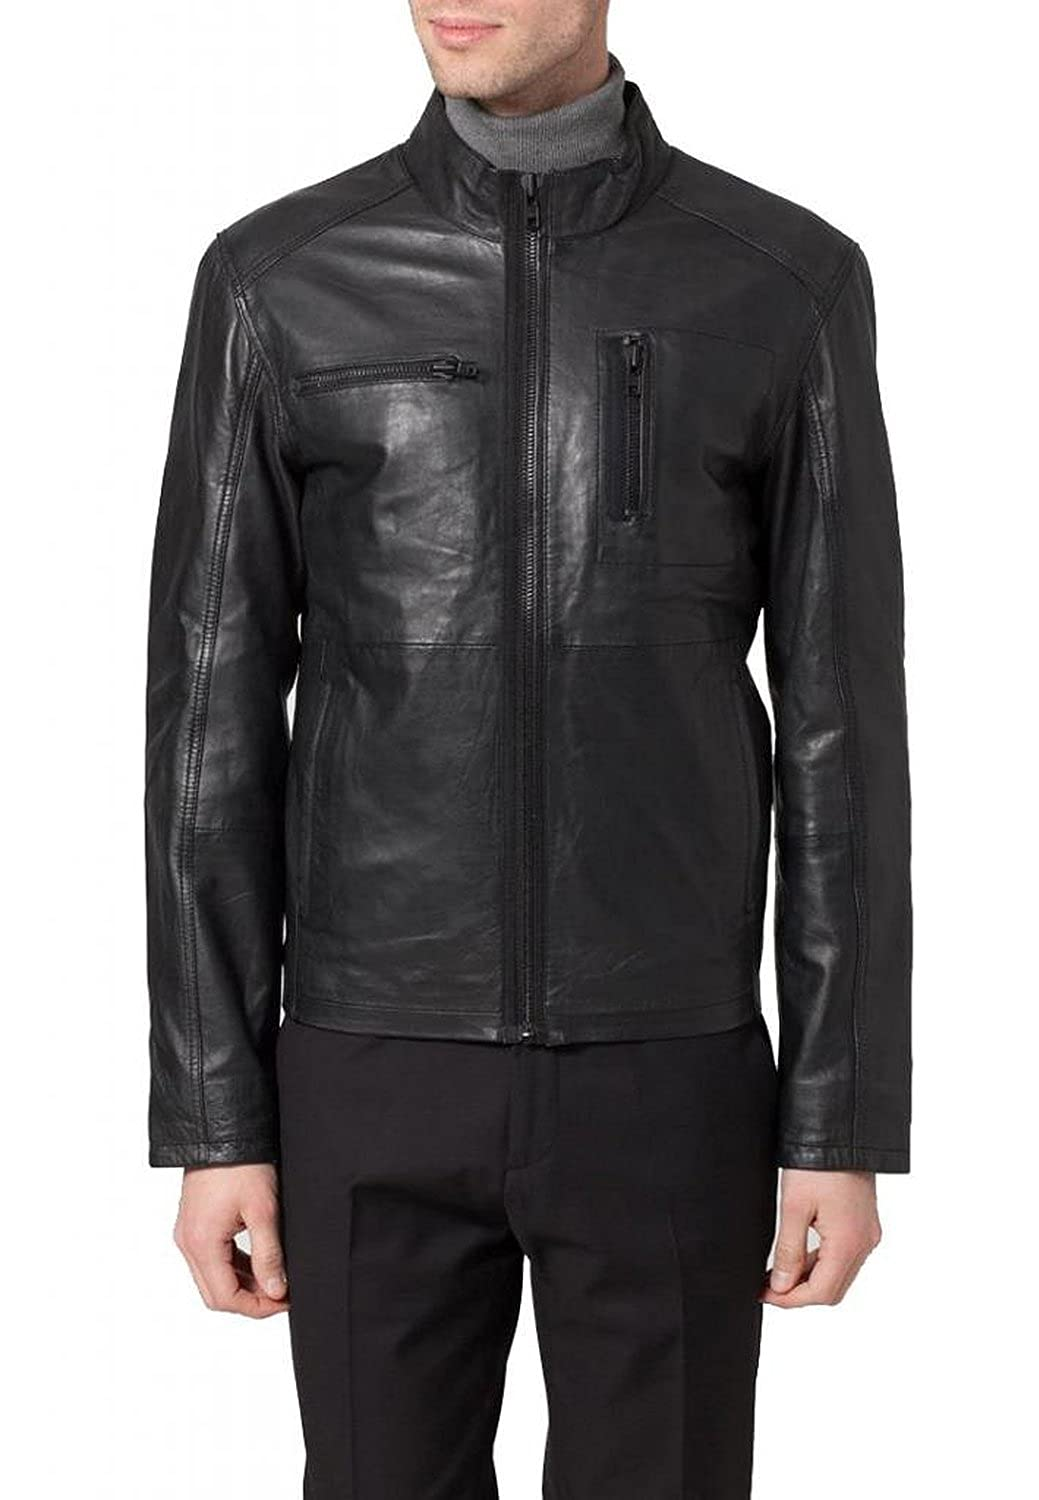 Laverapelle Men's Cow Skin Real Leather jacket Black - 1510264